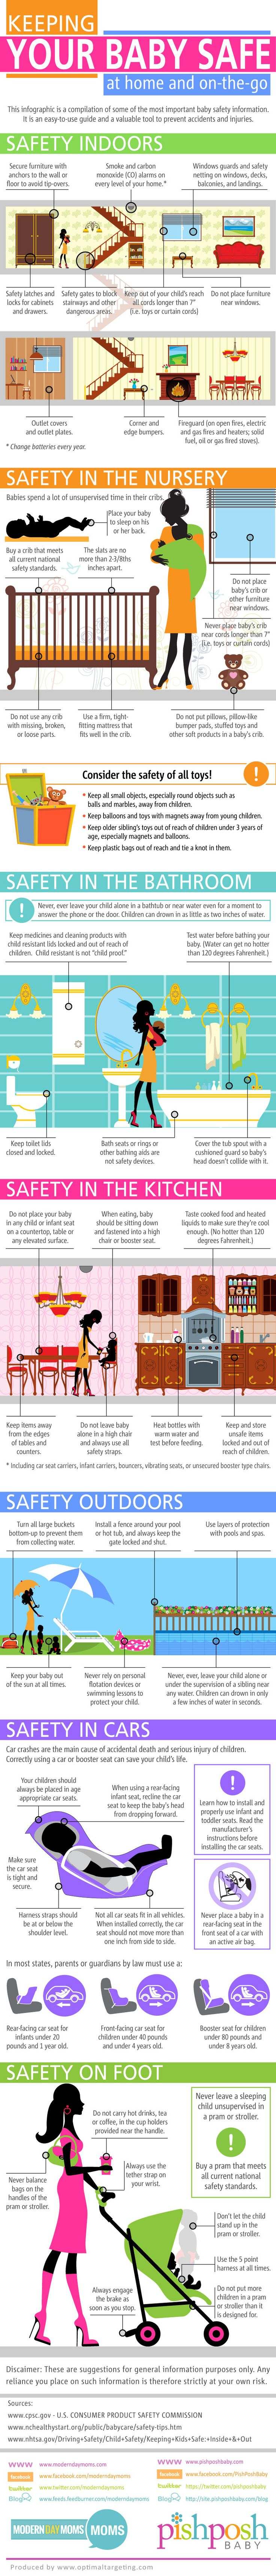 Great illustrations to look over during Baby Safety Month.